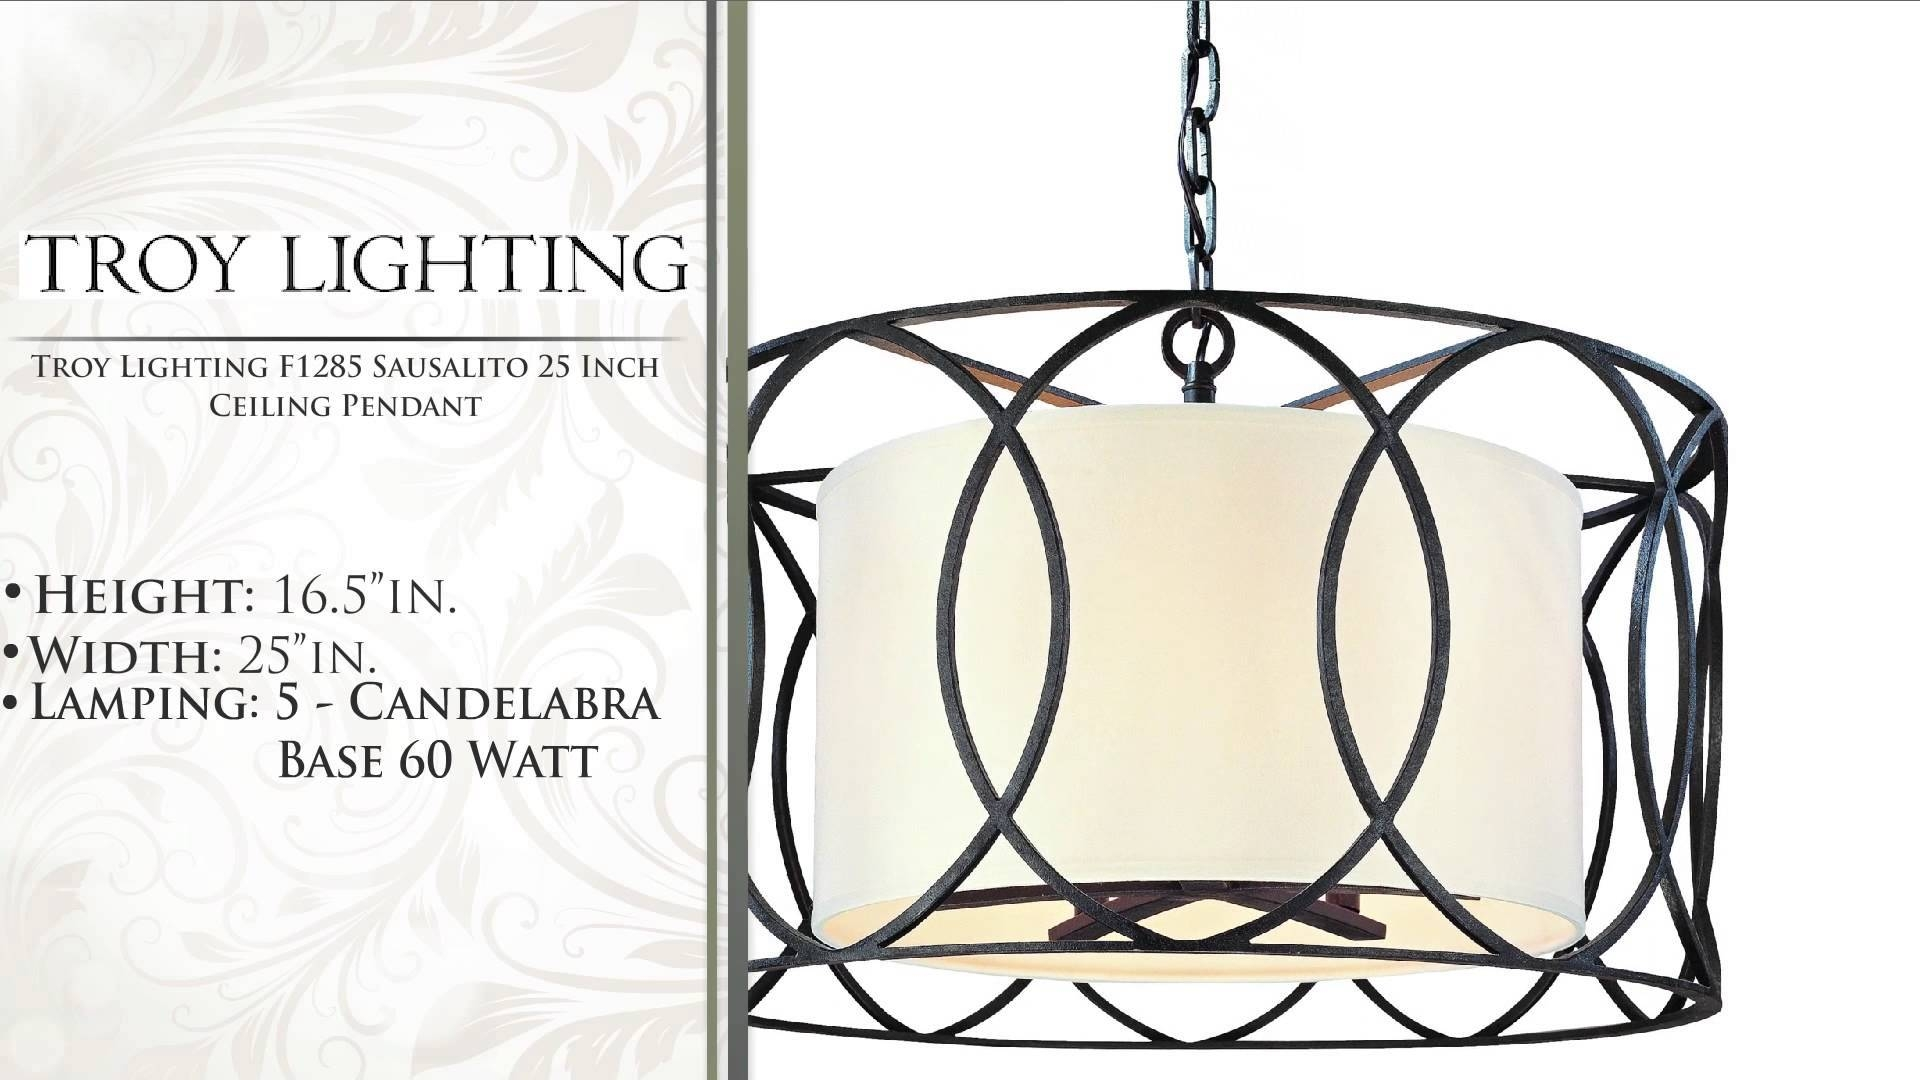 Troy Lighting F1285 Sausalito 25 Inch Ceiling Pendant – Youtube Within Troy Sausalito Pendants (View 8 of 15)